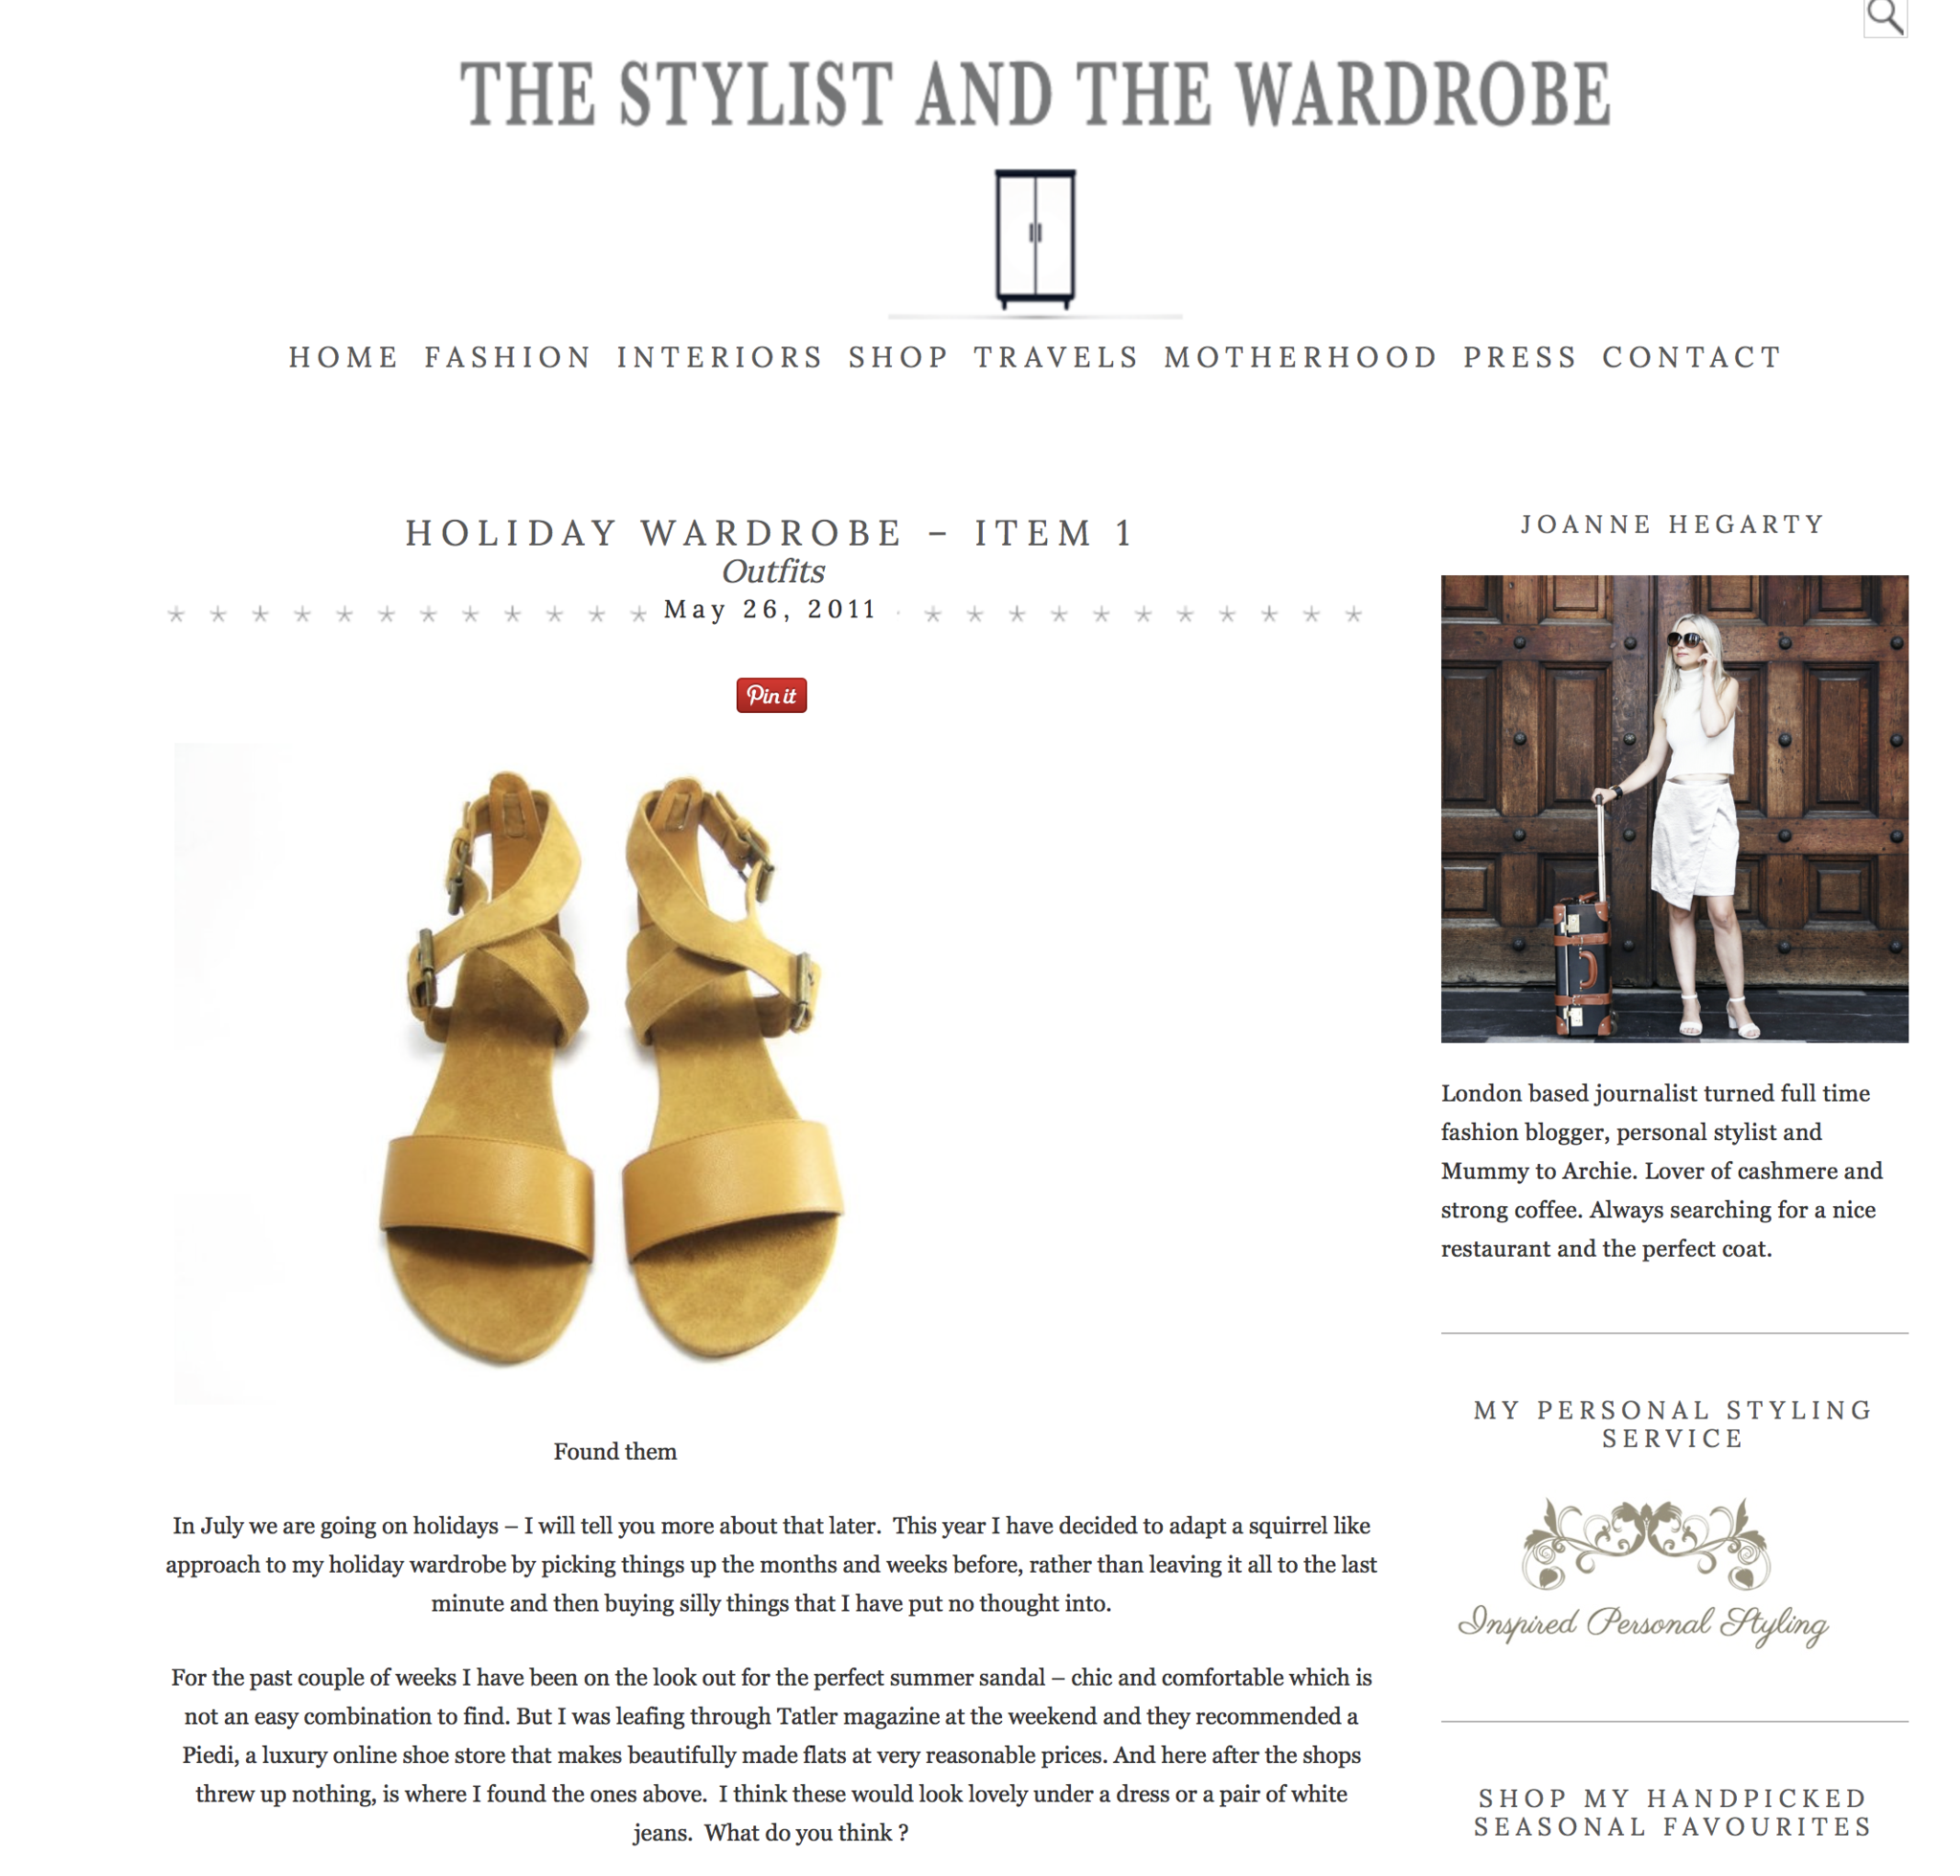 The Stylist and The Wardrobe, May 2011